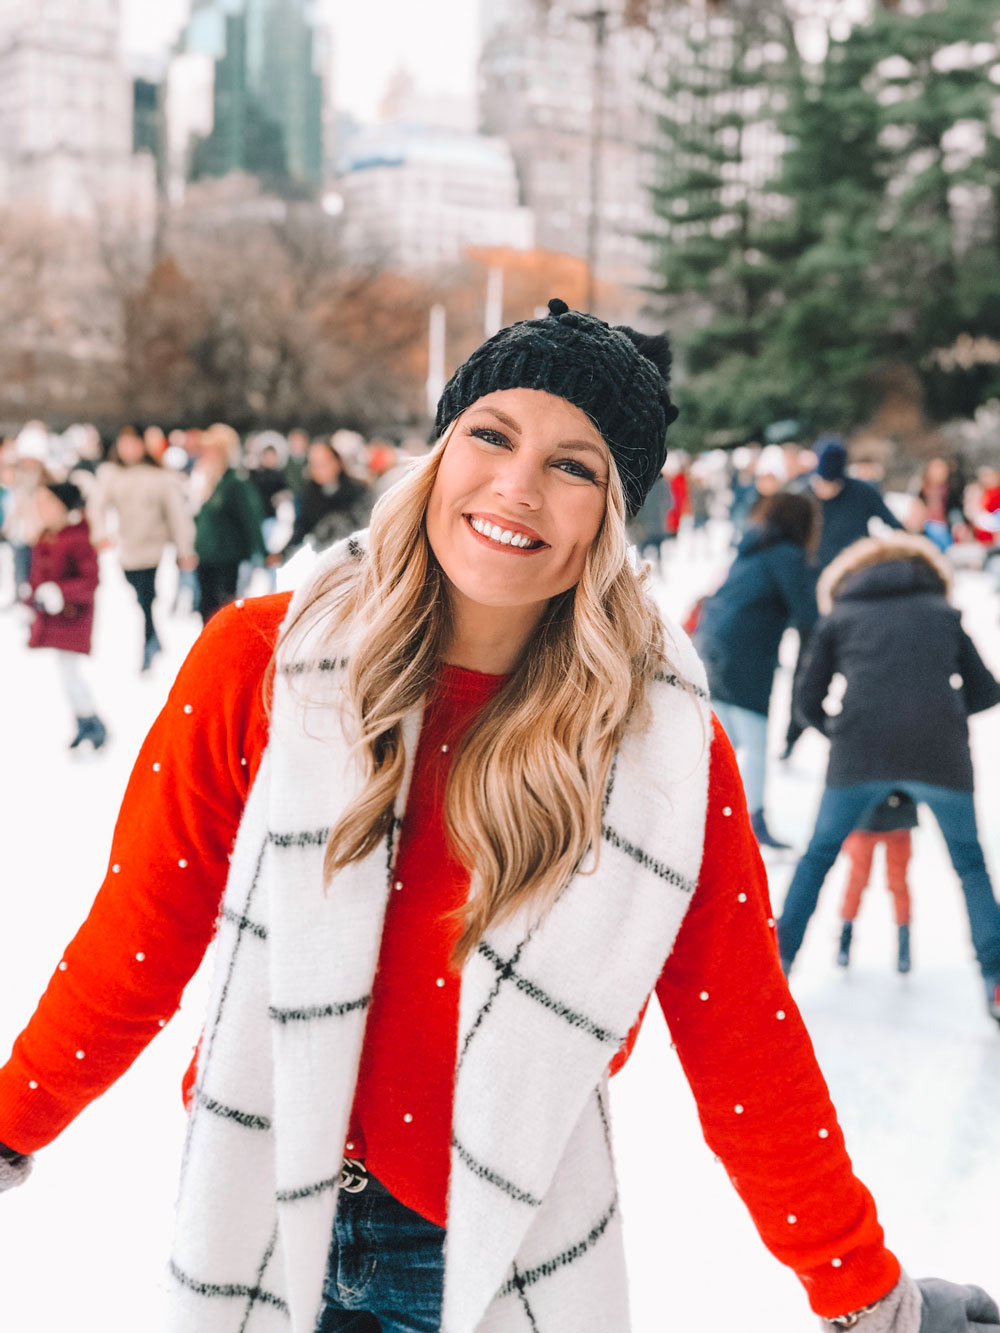 Amanda Martin of Amanda's OK Blog ice skates at the Wollman Rink wearing a red pearl sweater from H&M